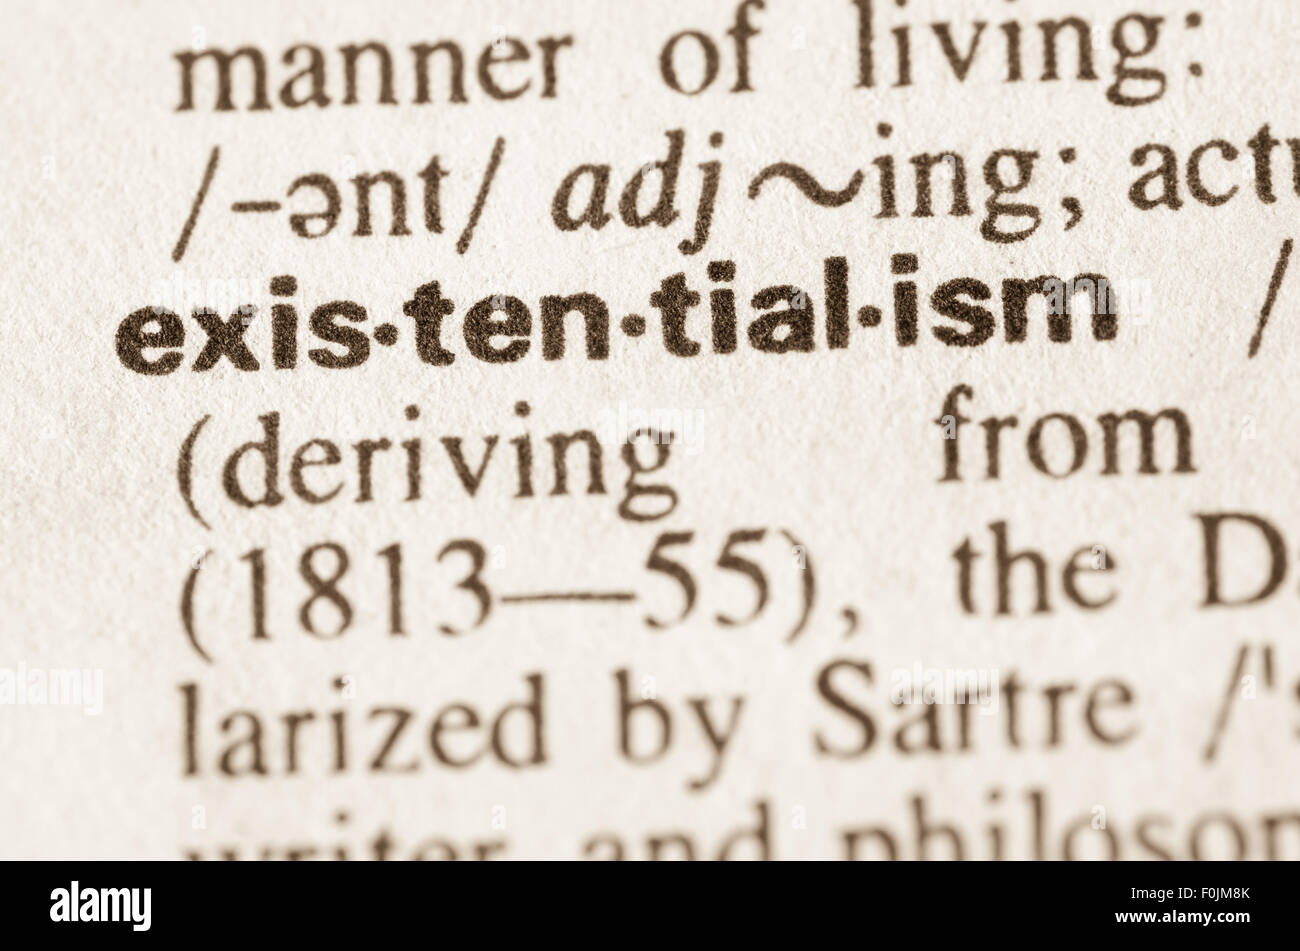 Awesome Definition Of Word Existentialism In Dictionary